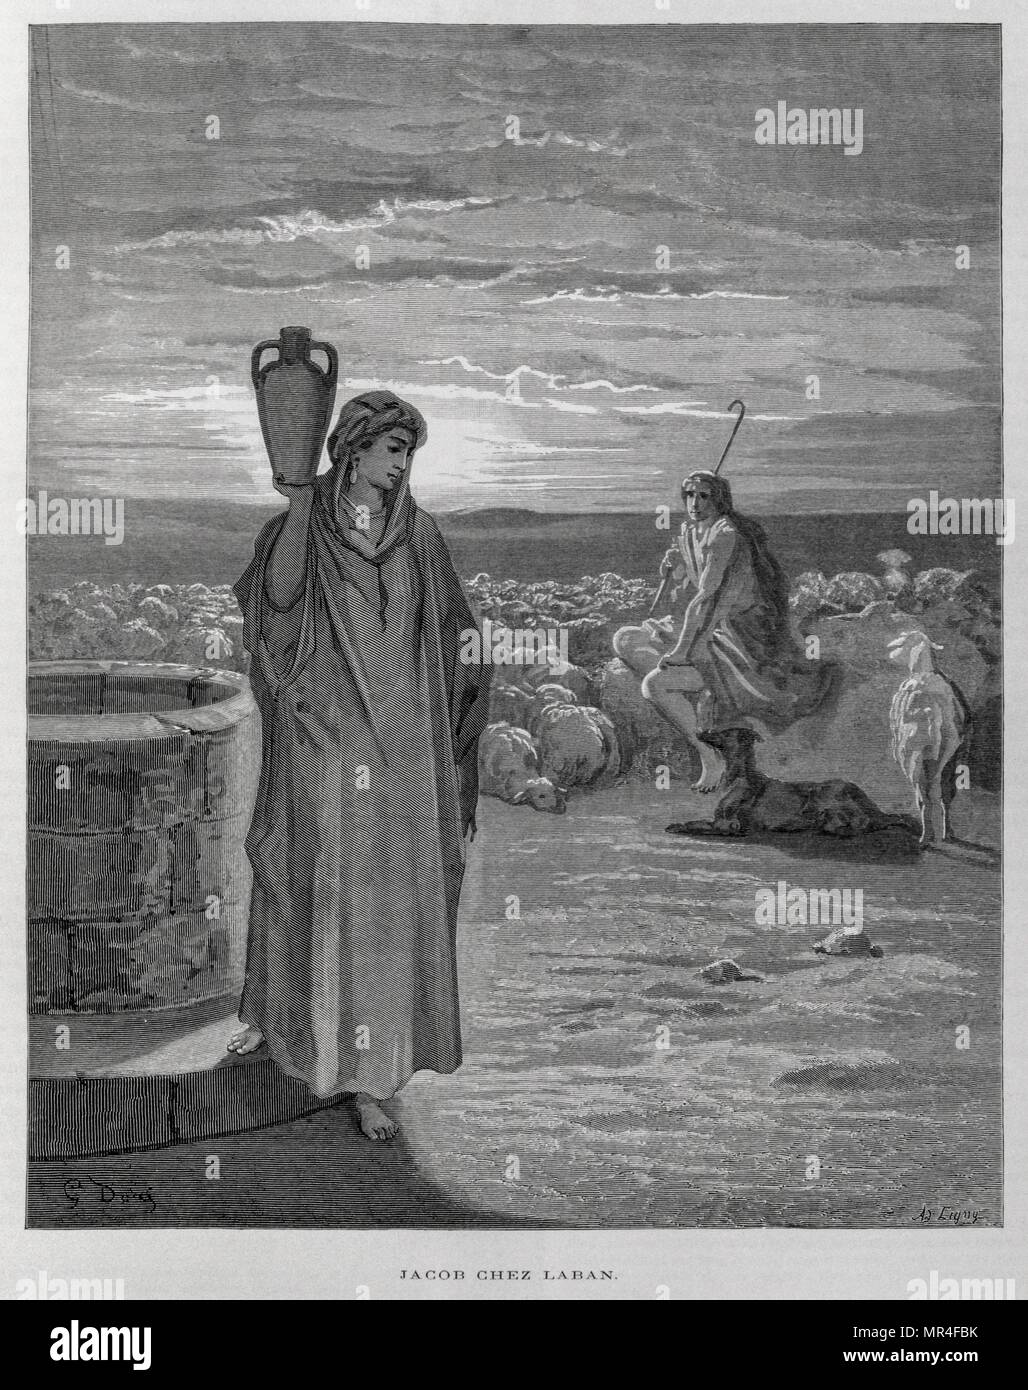 Jacob sees Rachel at the well of Laban's home, Illustration from the Dore Bible 1866. In 1866, the French artist and illustrator Gustave Dore (1832–1883), published a series of 241 wood engravings for a new deluxe edition of the 1843 French translation of the Vulgate Bible, popularly known as the Bible de Tours. This new edition was known as La Grande Bible de Tours and its illustrations were immensely successful. Jacob came to work for Laban. Laban was more than 30 years older than Jacob, and employed him for 20 years. - Stock Image